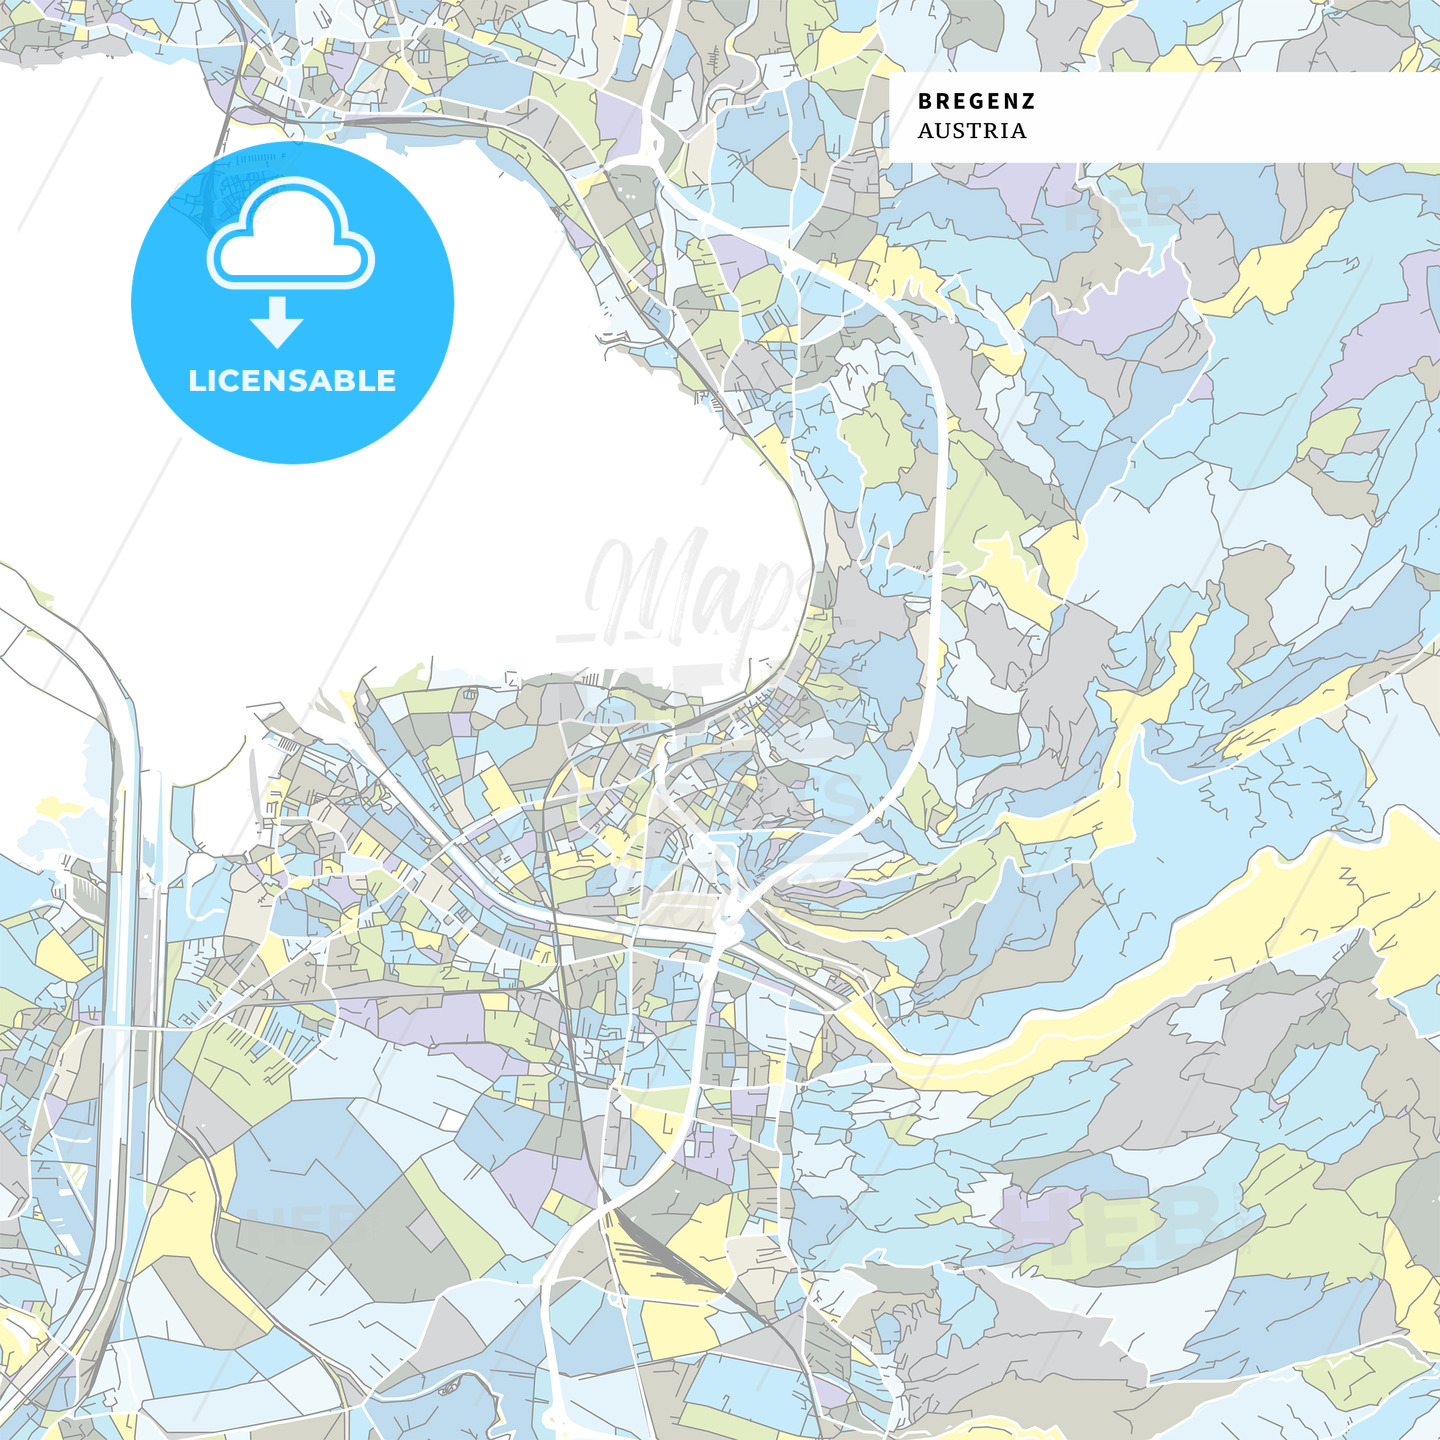 Colorful map of Bregenz, Austria - HEBSTREITS